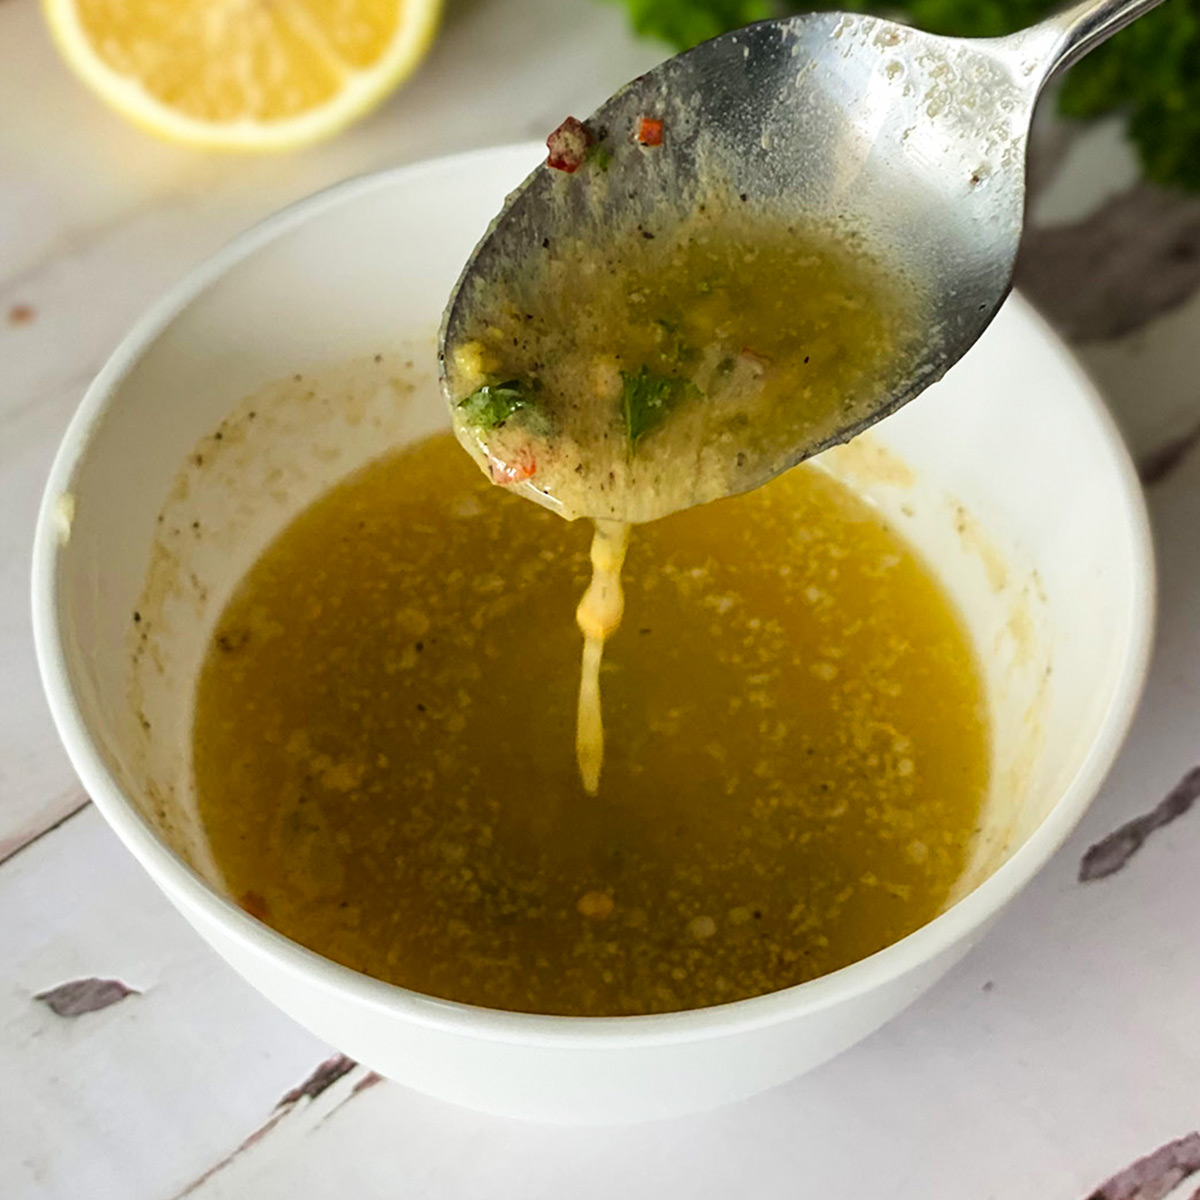 cowboy butter sauce dripping from spoon